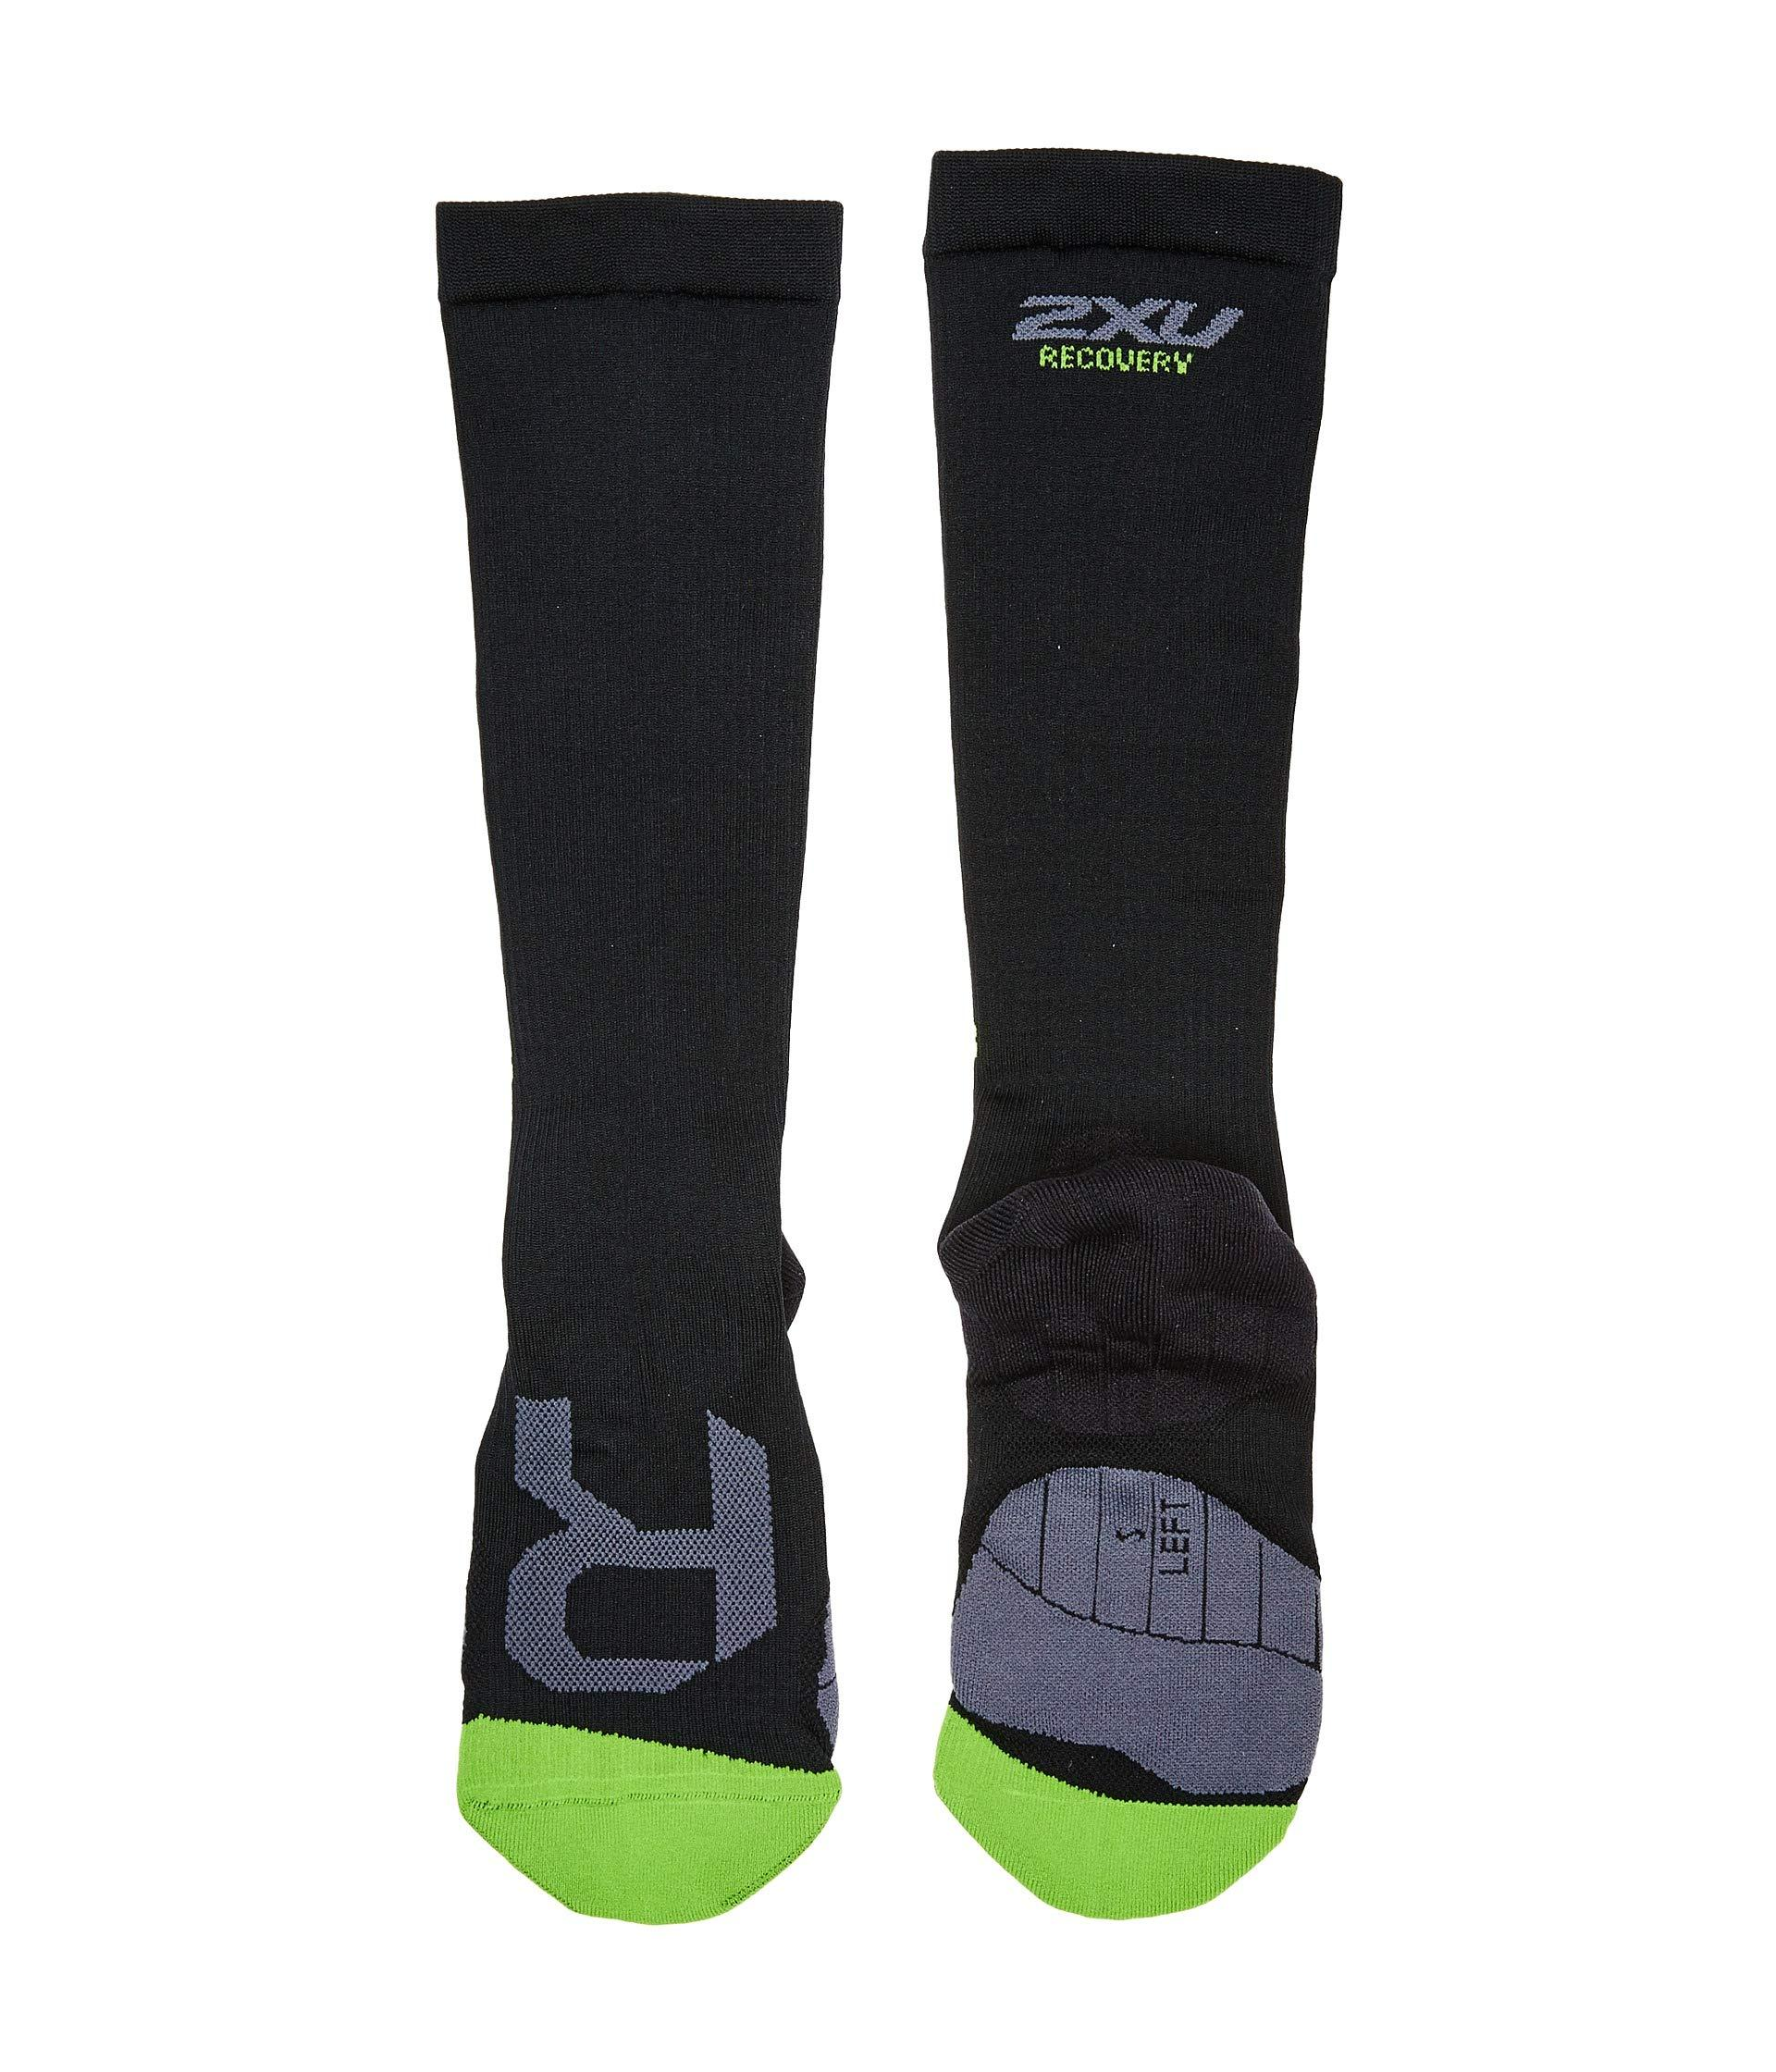 17b8081d22 2Xu Recovery Compression Socks - Image Sock and Collections ...